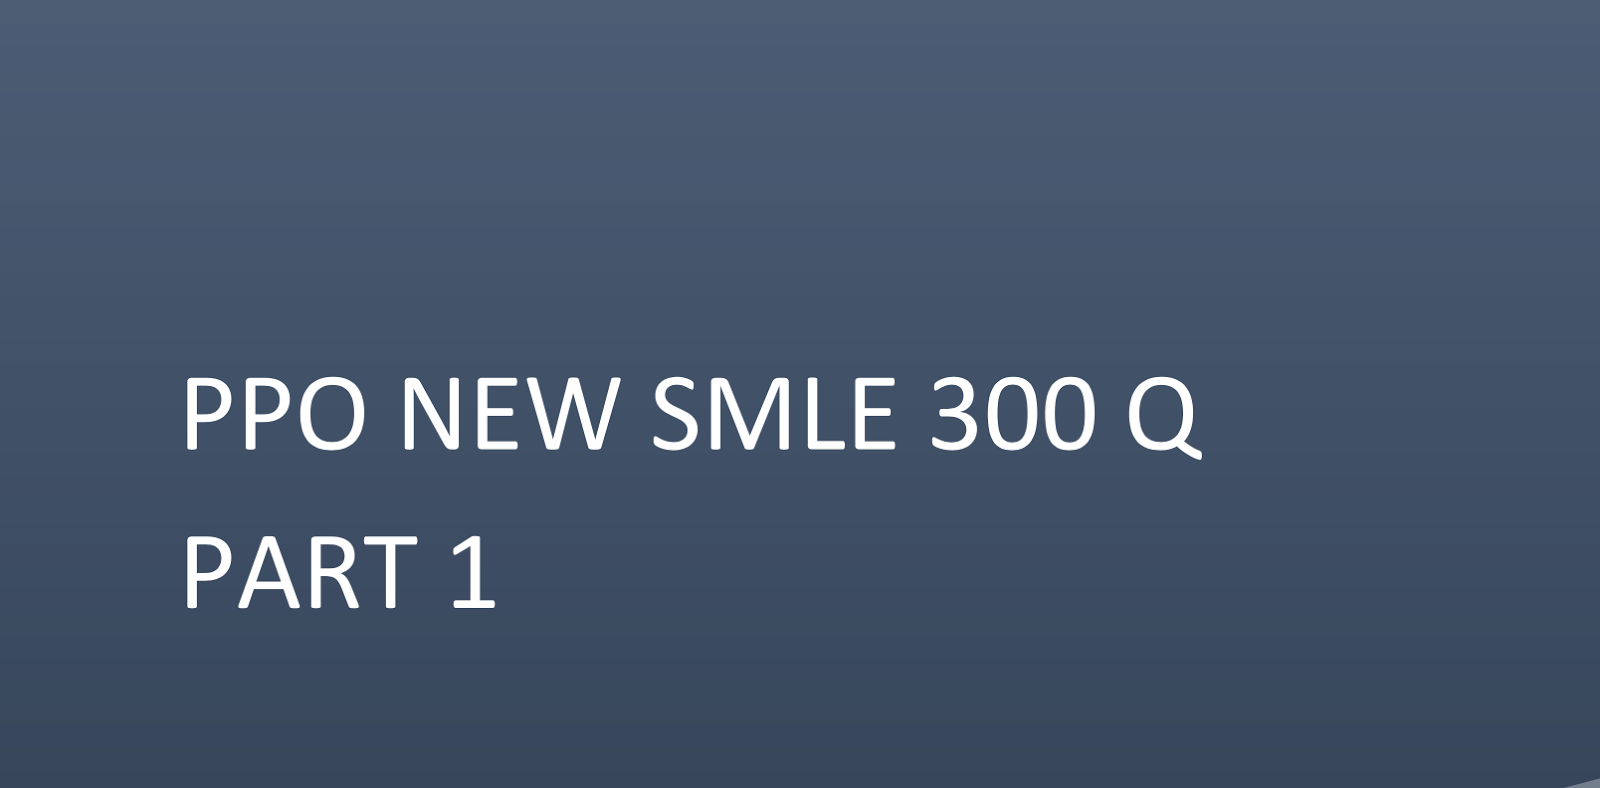 """SMLE Questions from August October ظ""""ظ'ط·ط© ط§ظ""""ط´ط§ط´ط© ظ،ظ¤ظ£ظ©-ظظ¢-ظظ، ظپظٹ ظ¨.ظ،ظ،.ظ£ظ§ ظ….png"""